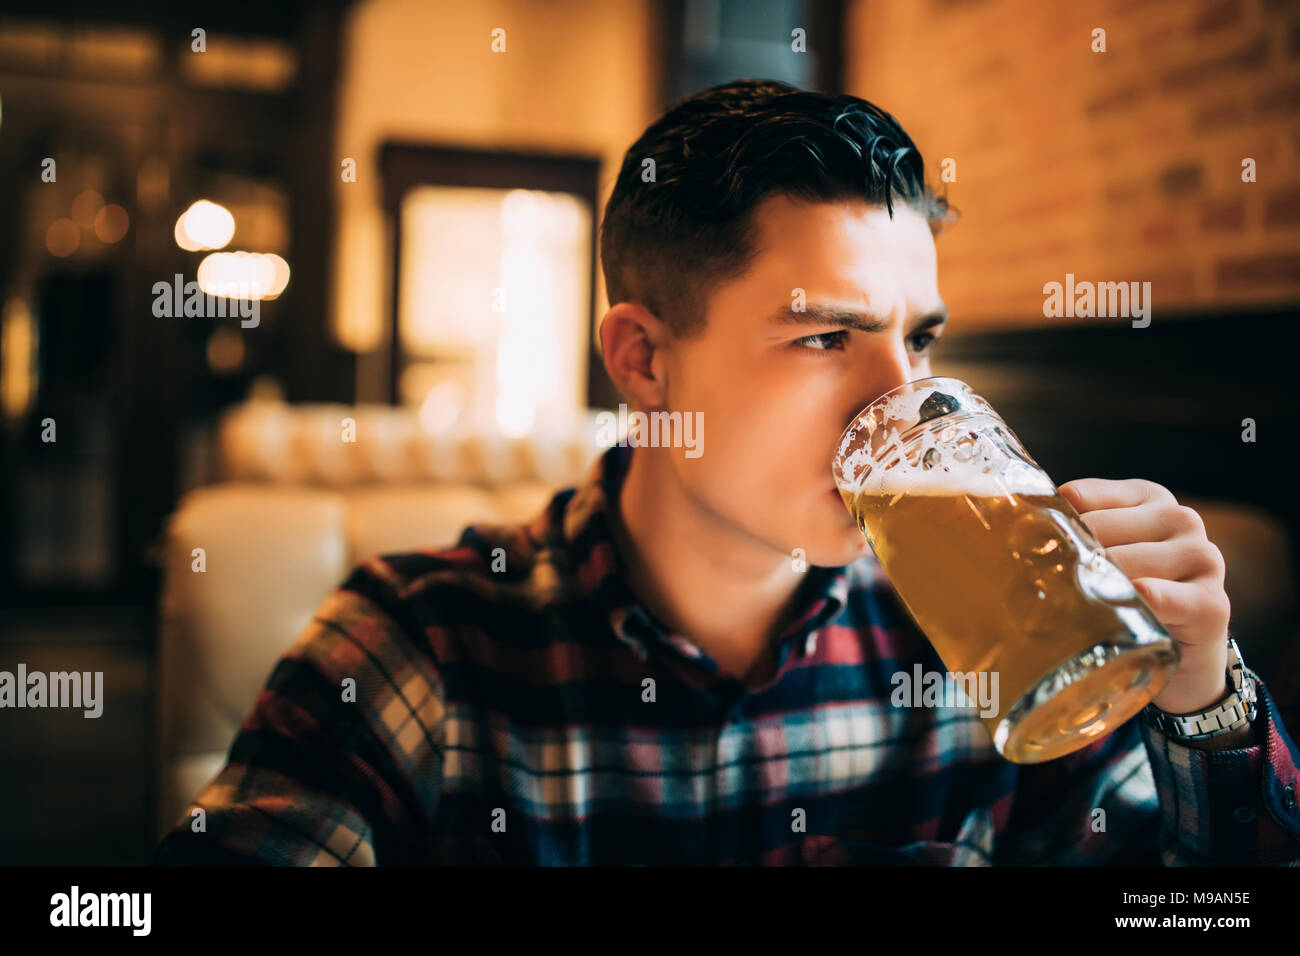 Man drinking beer. Young man drinking beer assis à l'comptoir bar Photo Stock